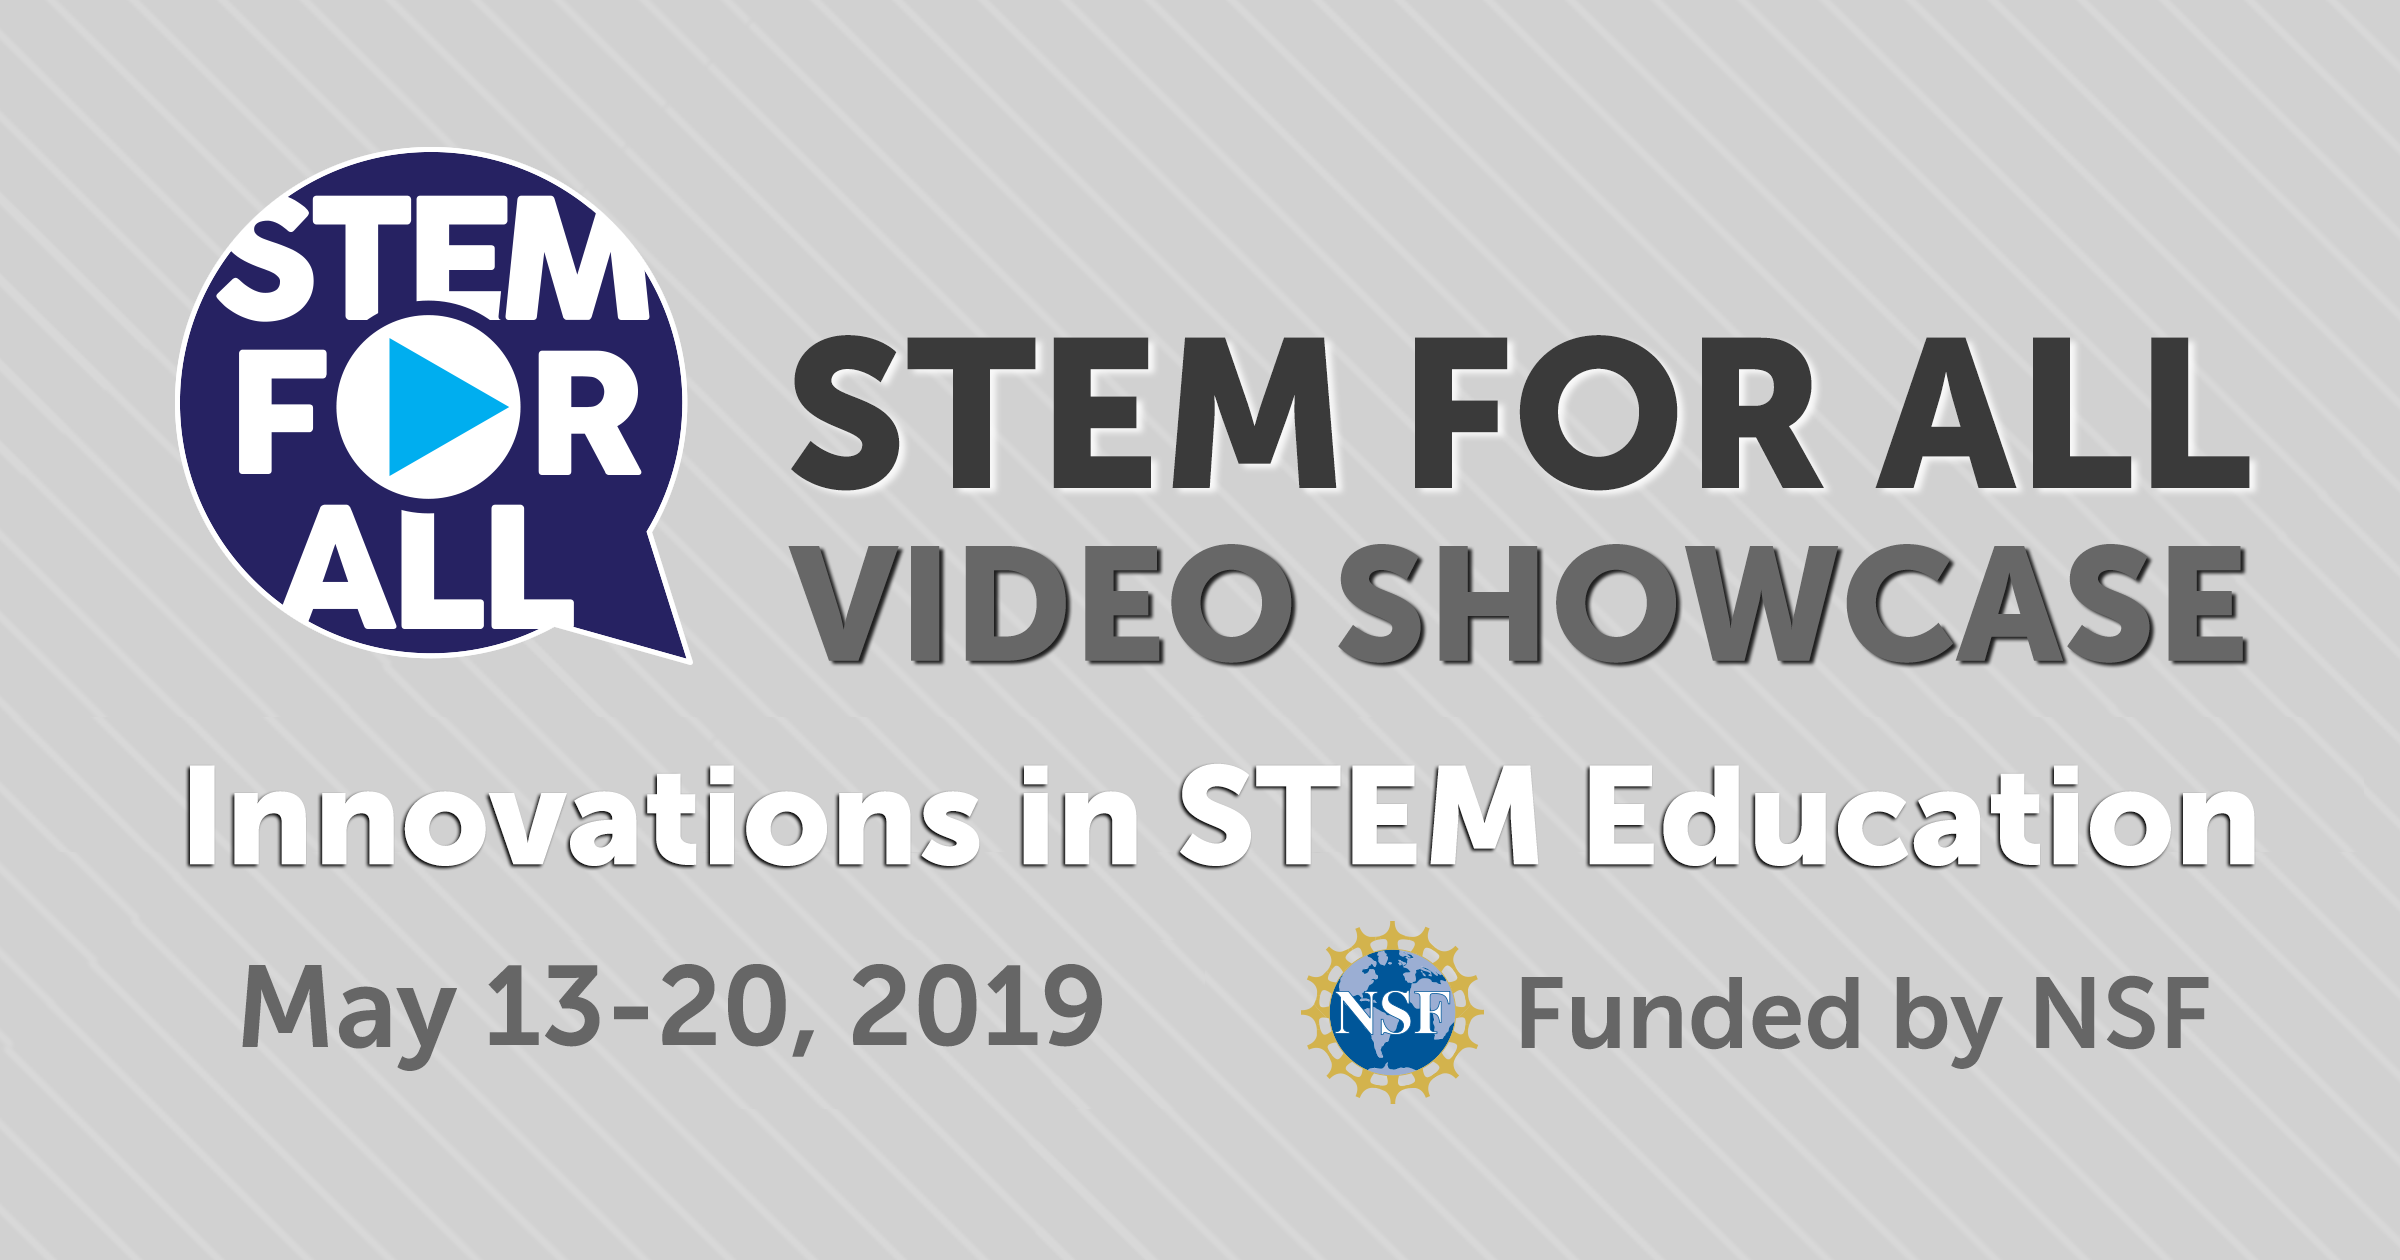 2019 STEM for All Video Showcase: Innovations in STEM Education